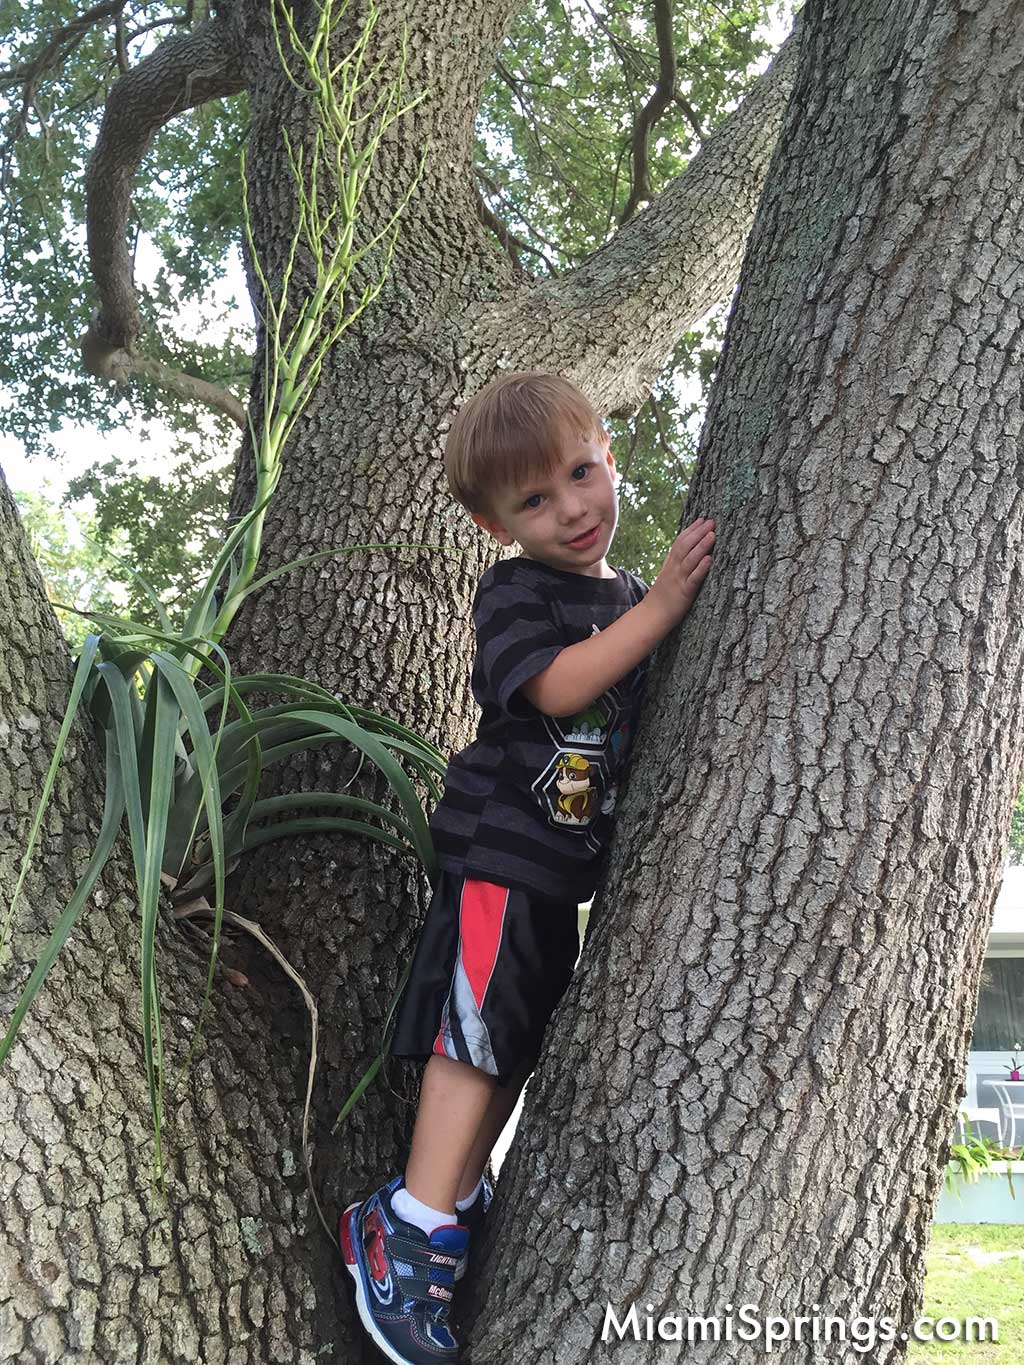 Climbing a tree in Miami Springs